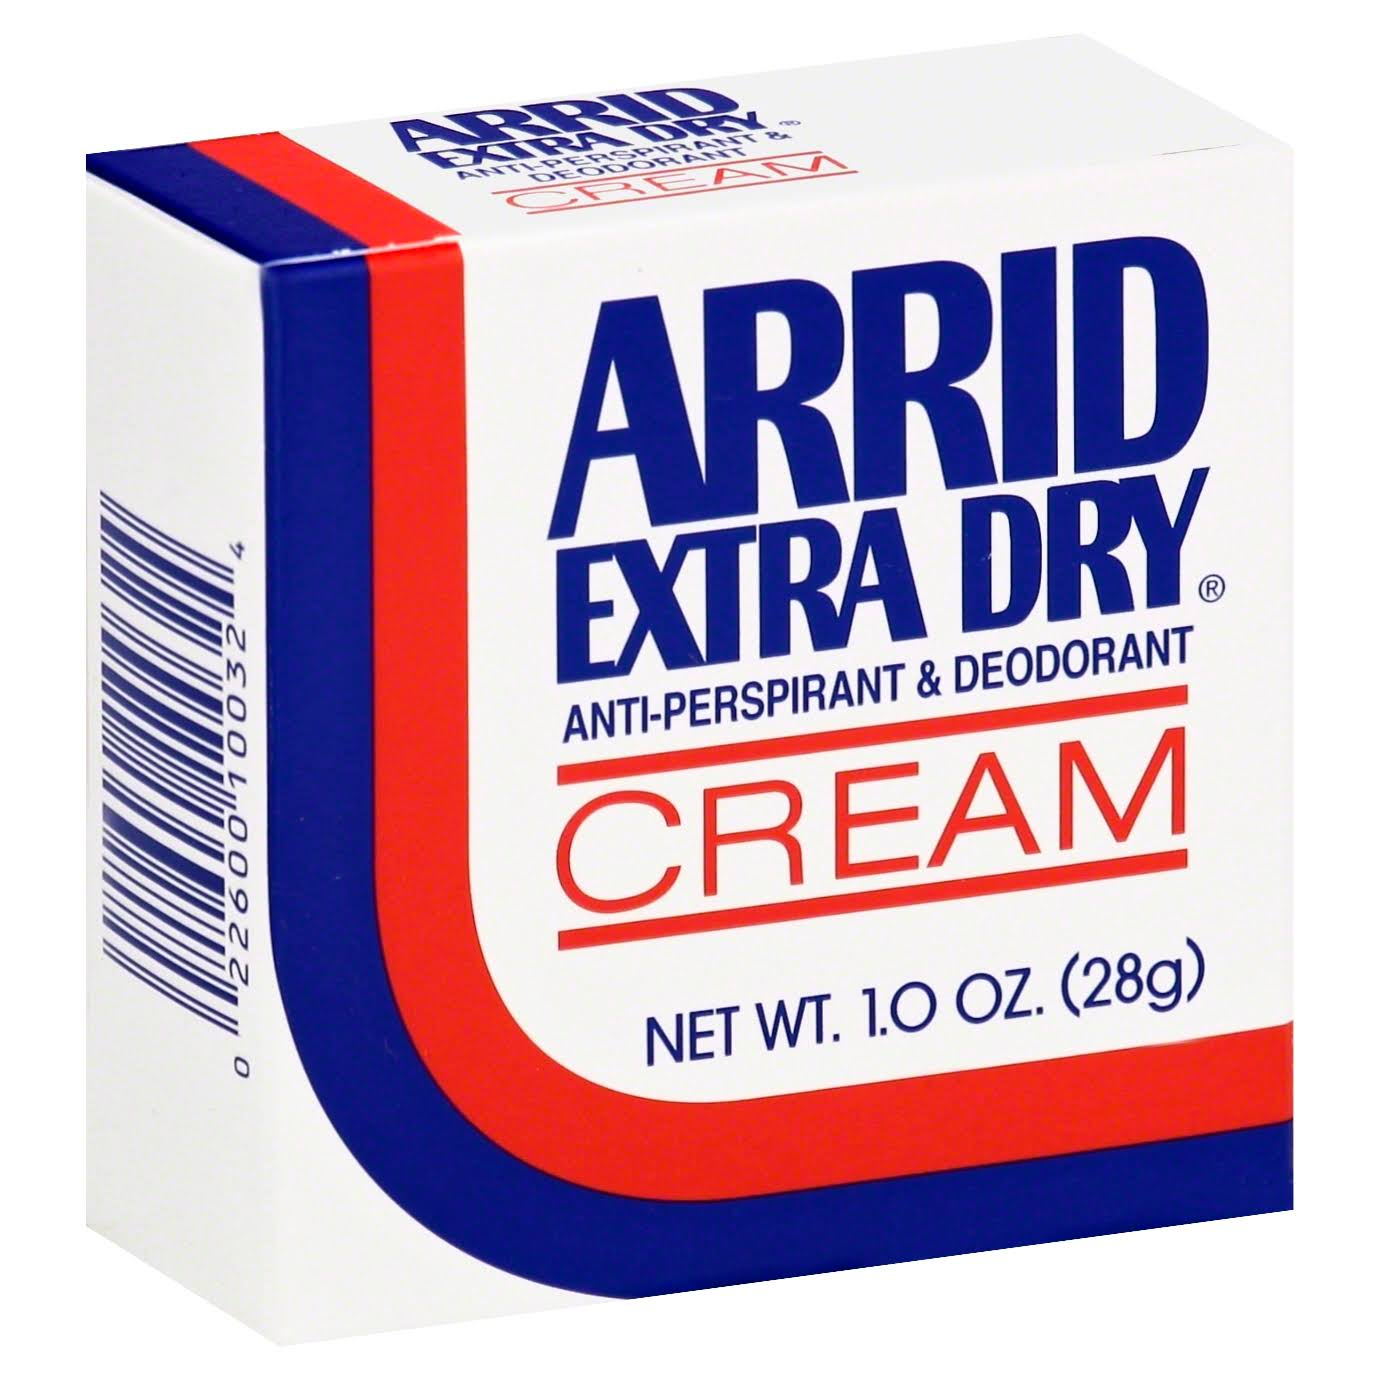 Arrid Extra Dry Antiperspirant and Deodorant Cream - 1oz